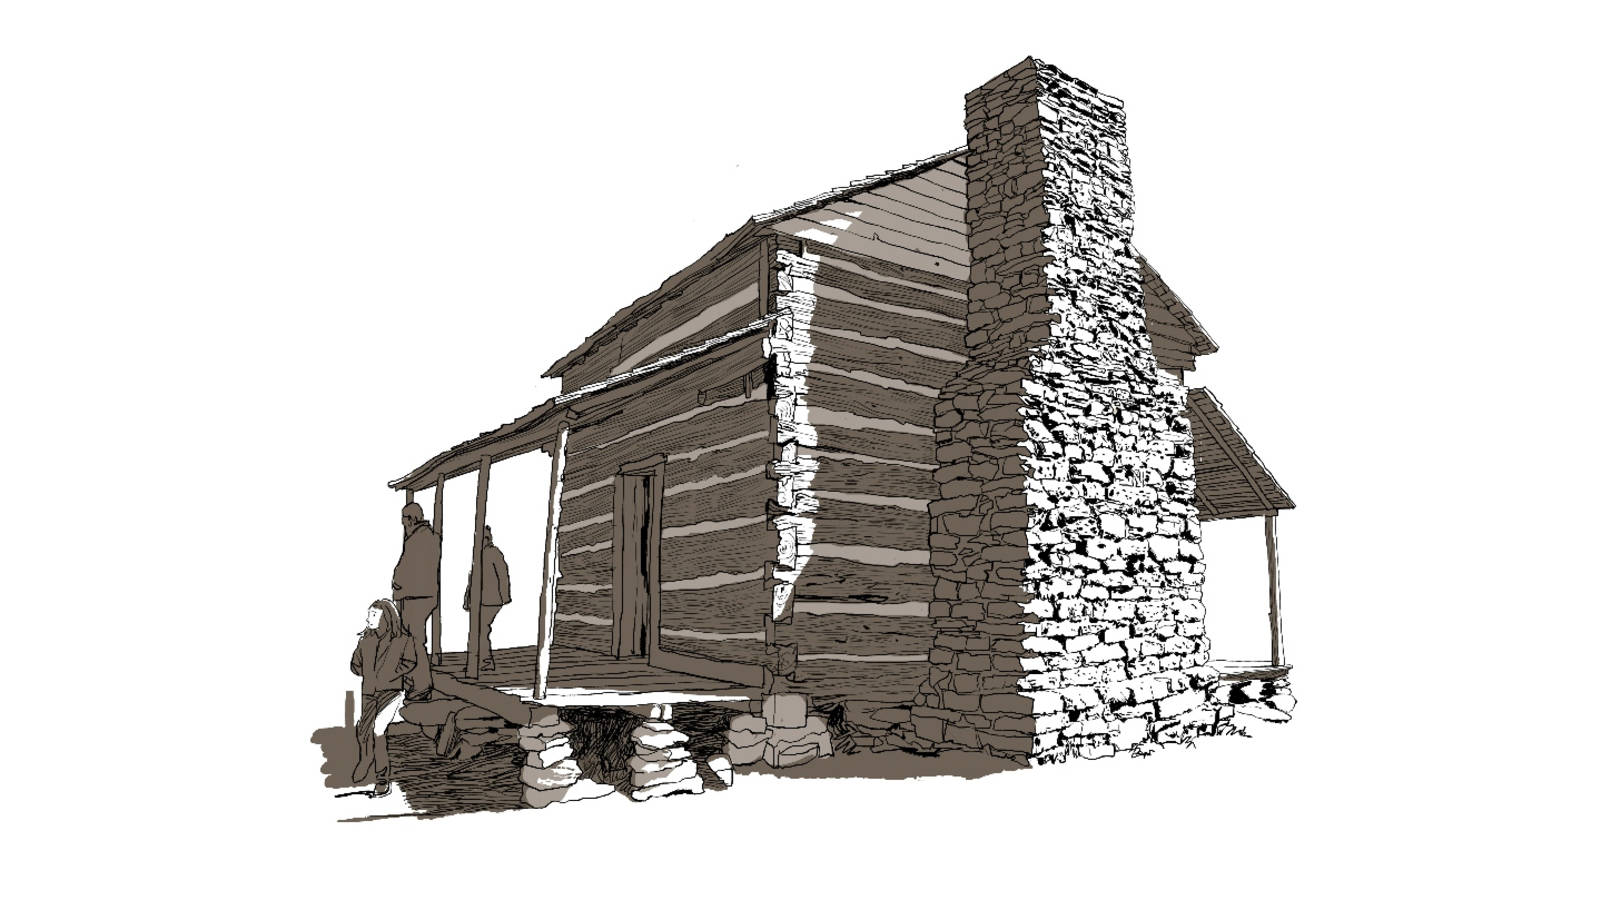 <p>The John Oliver cabin is thought to be the oldest of the over 80 structures in the park. No frills here: The immense amount of labor required to build the simplest dwelling is there for all to see.</p>